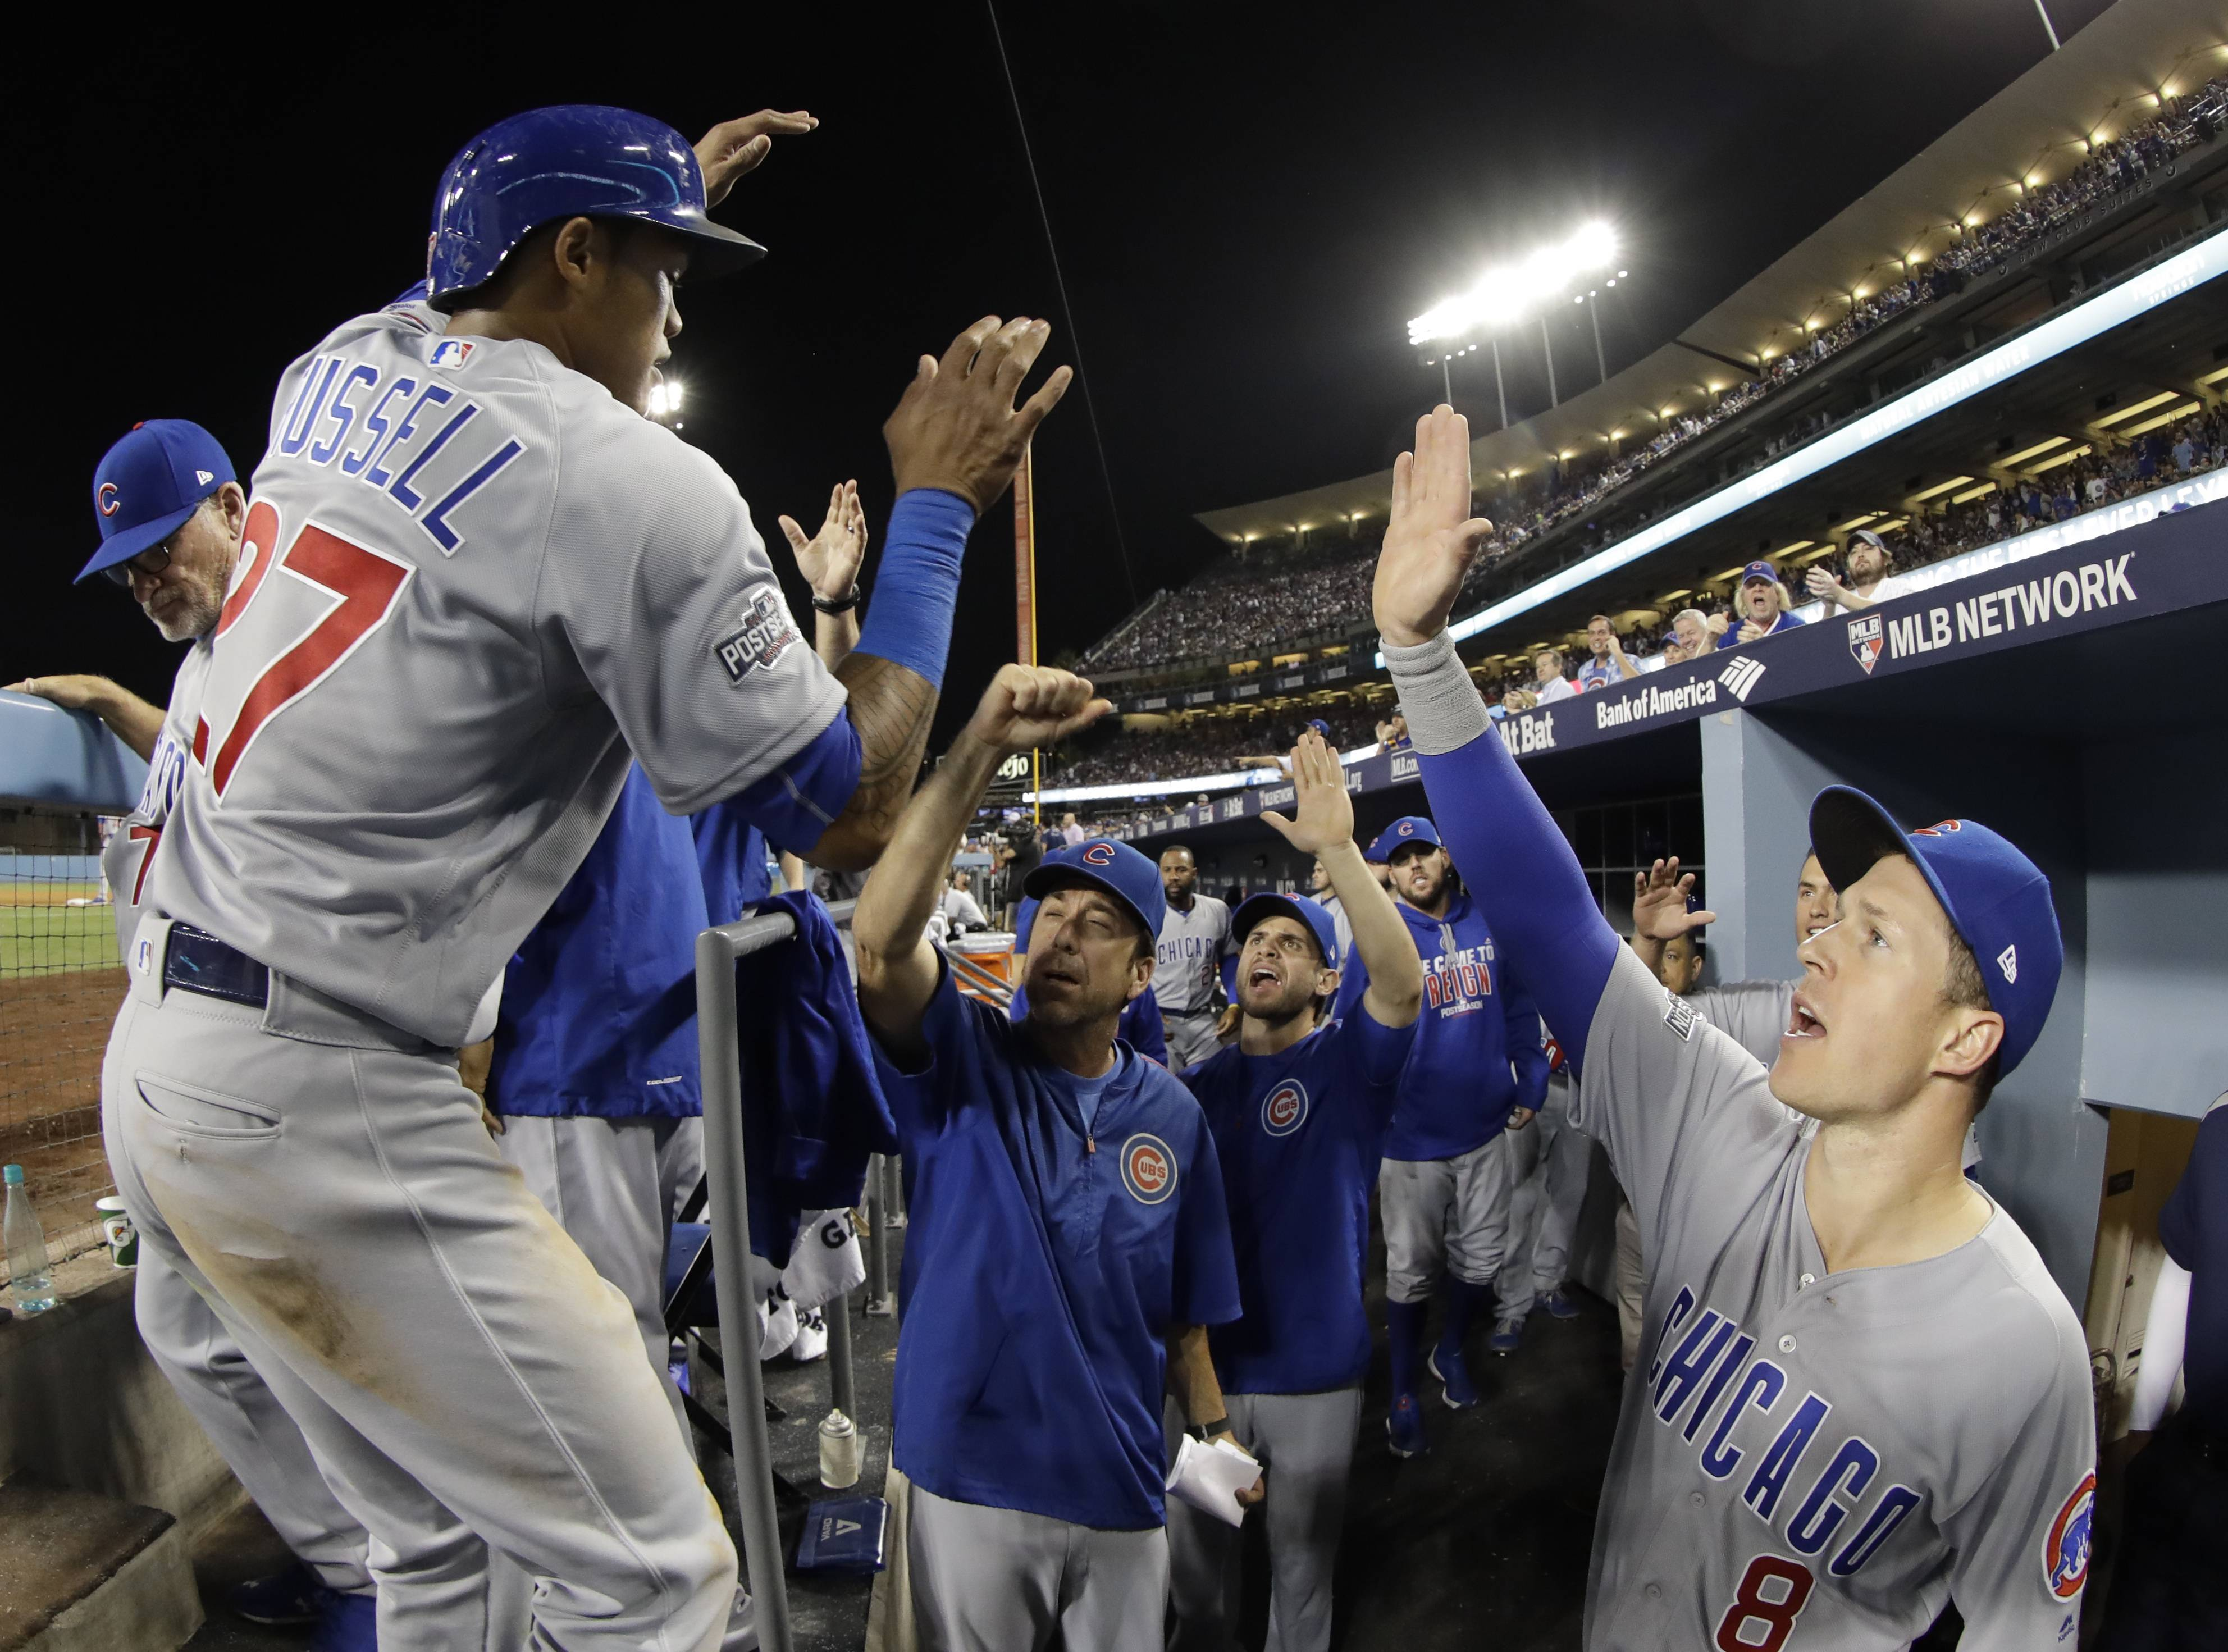 Chicago Cubs' Addison Russell is congratulated after scoring during the eighth inning of Game 5 of the National League baseball championship series against the Los Angeles Dodgers Thursday, Oct. 20, 2016, in Los Angeles.